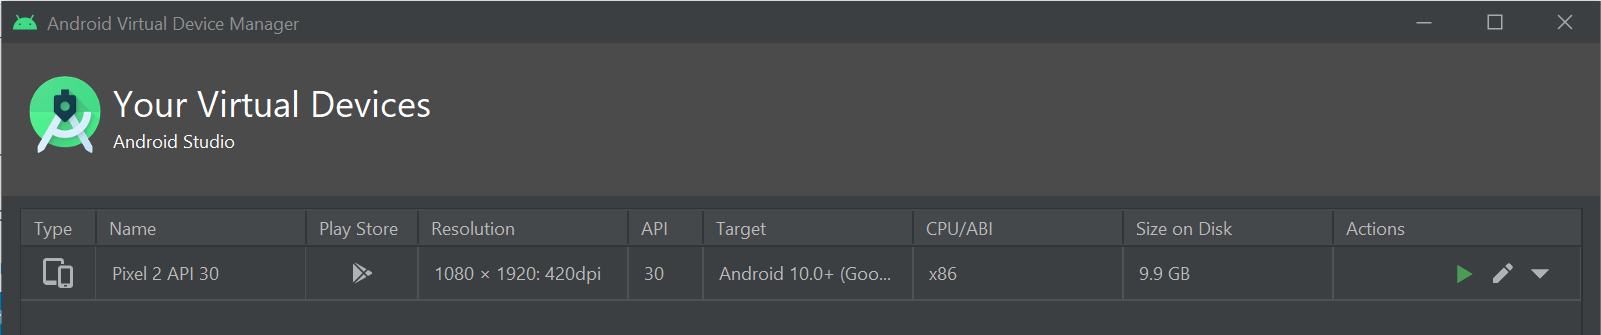 Android%20Studio%20Virtual%20Device